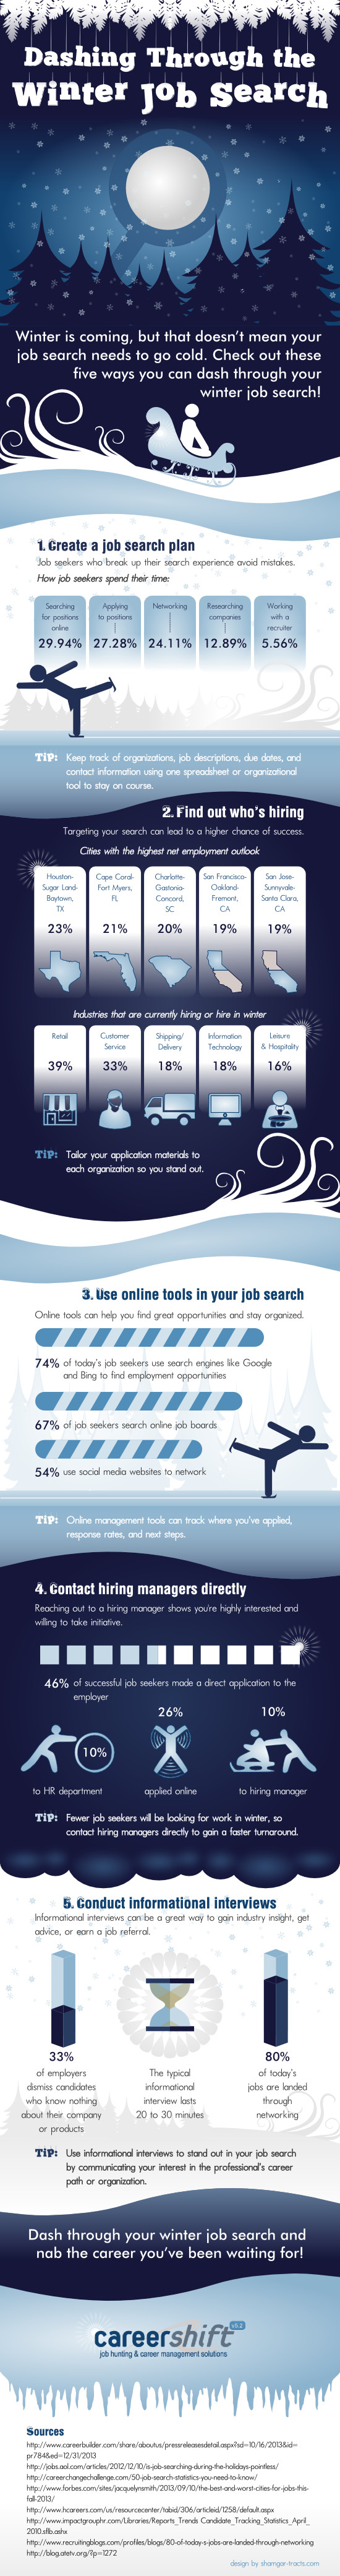 Dashing Through The Winter Job Search [INFOGRAPHIC]